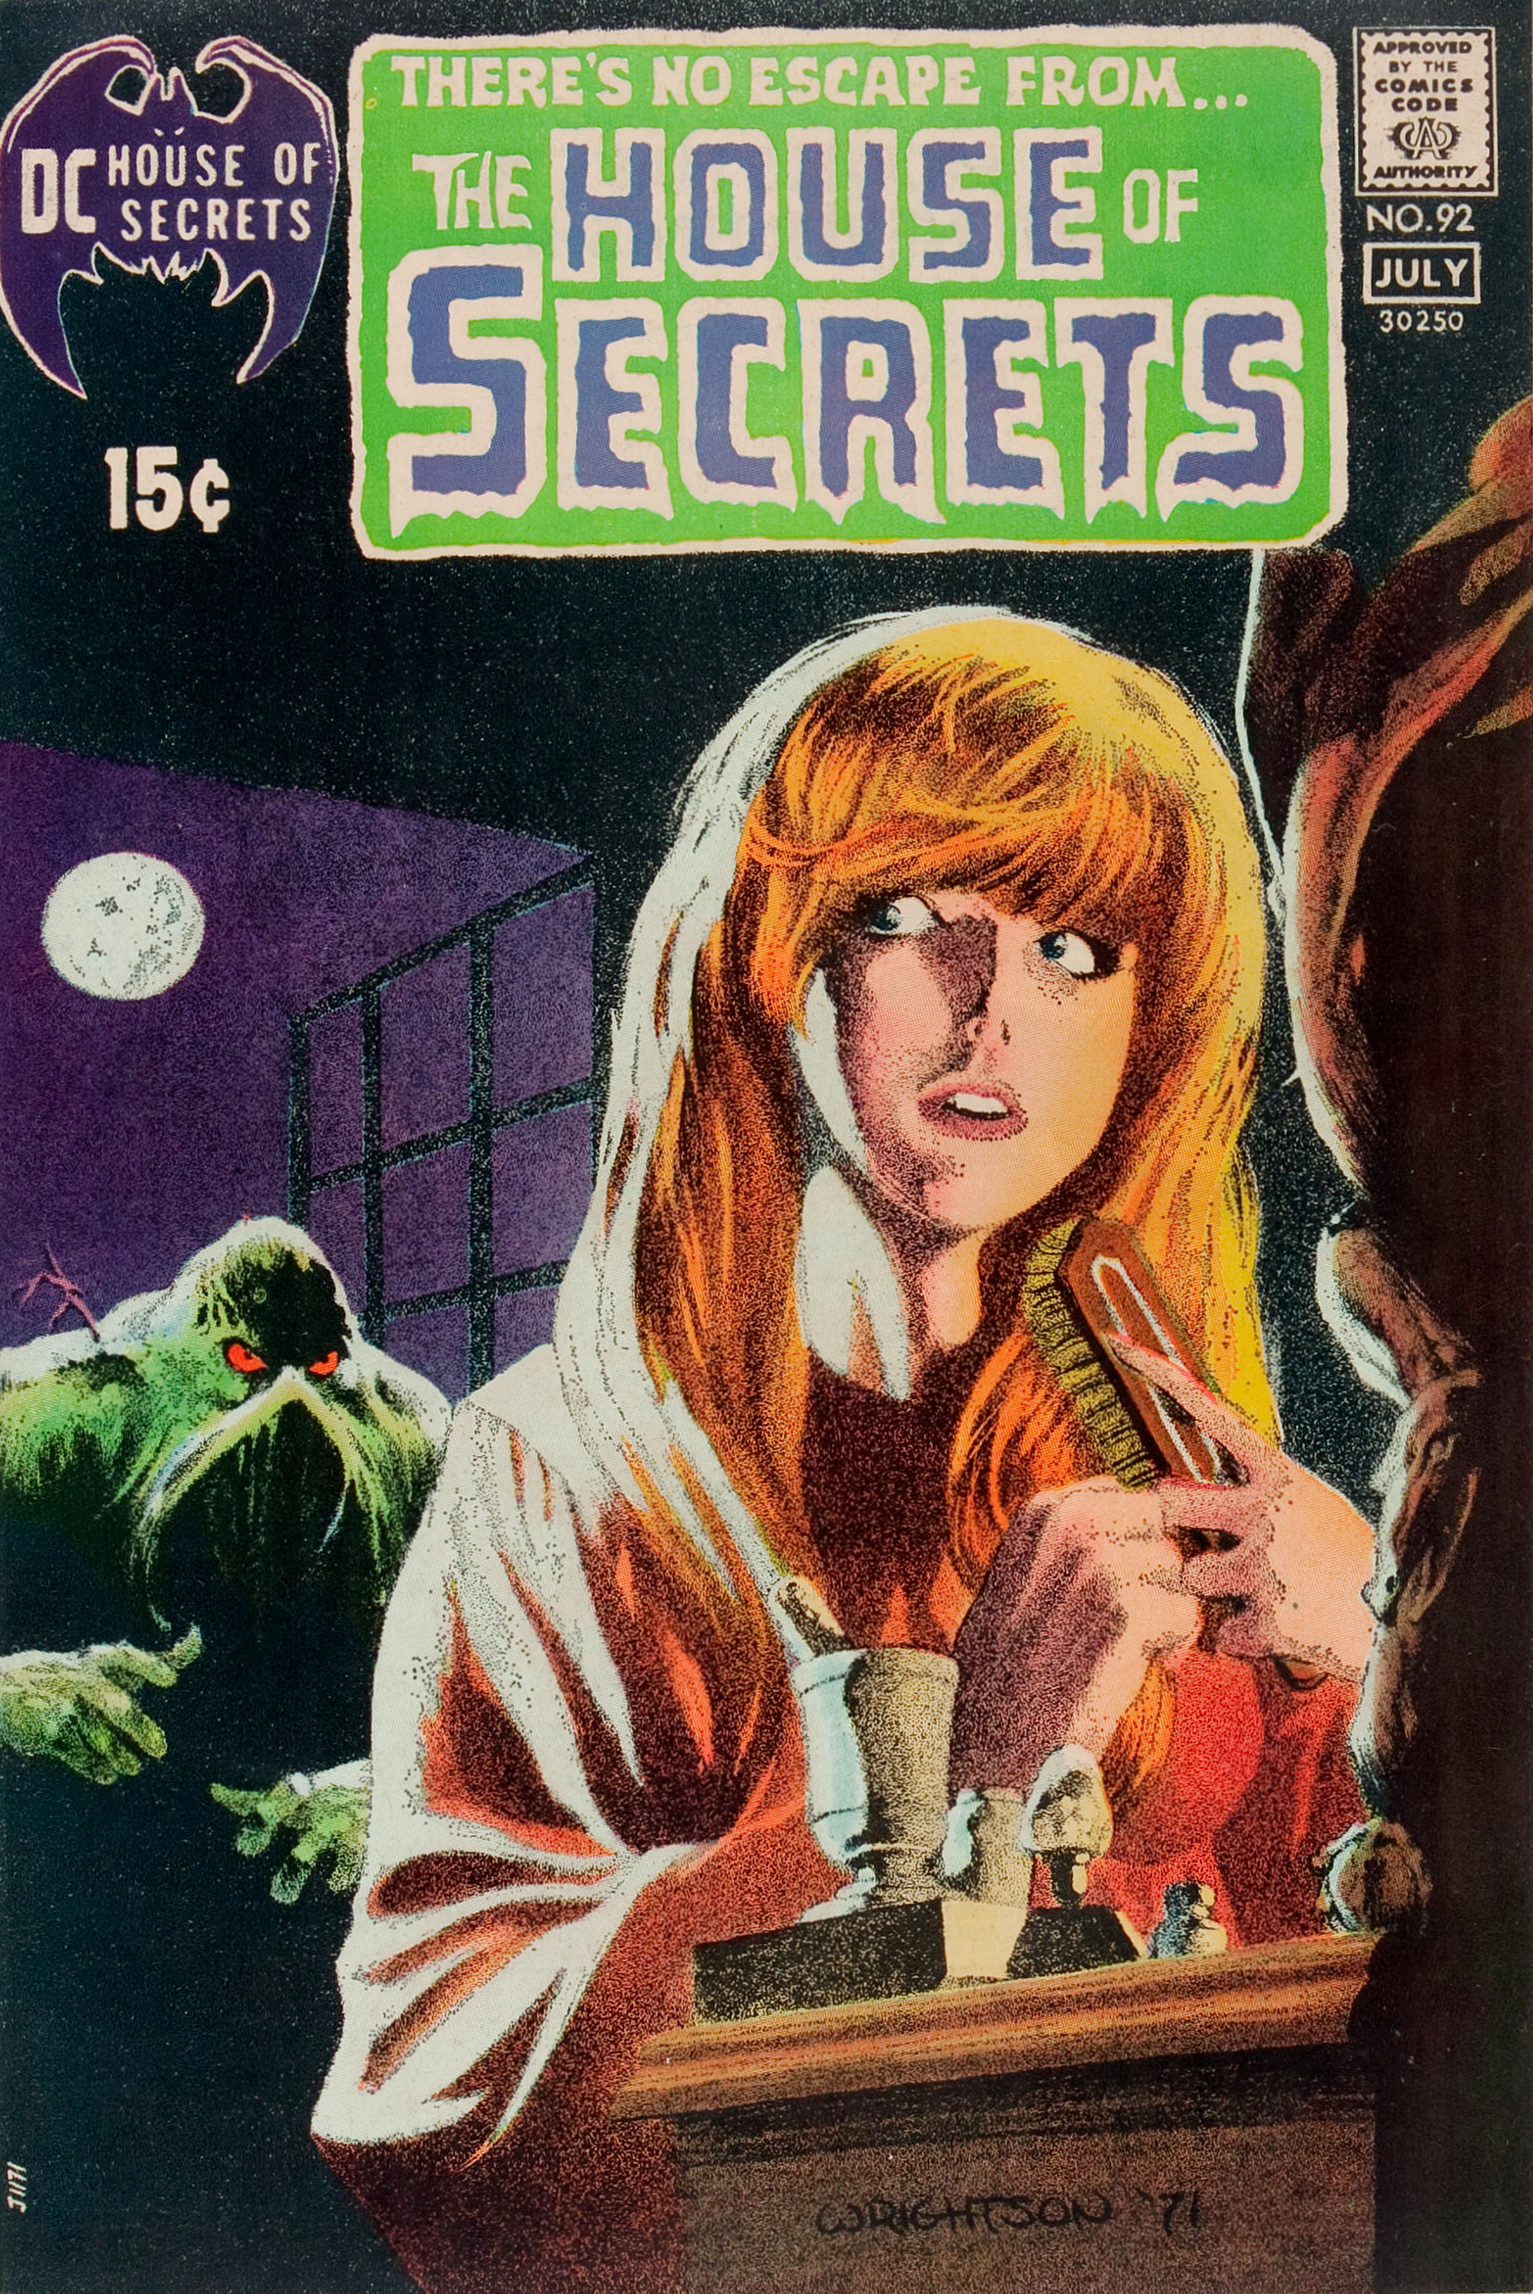 house of secrets issue 92